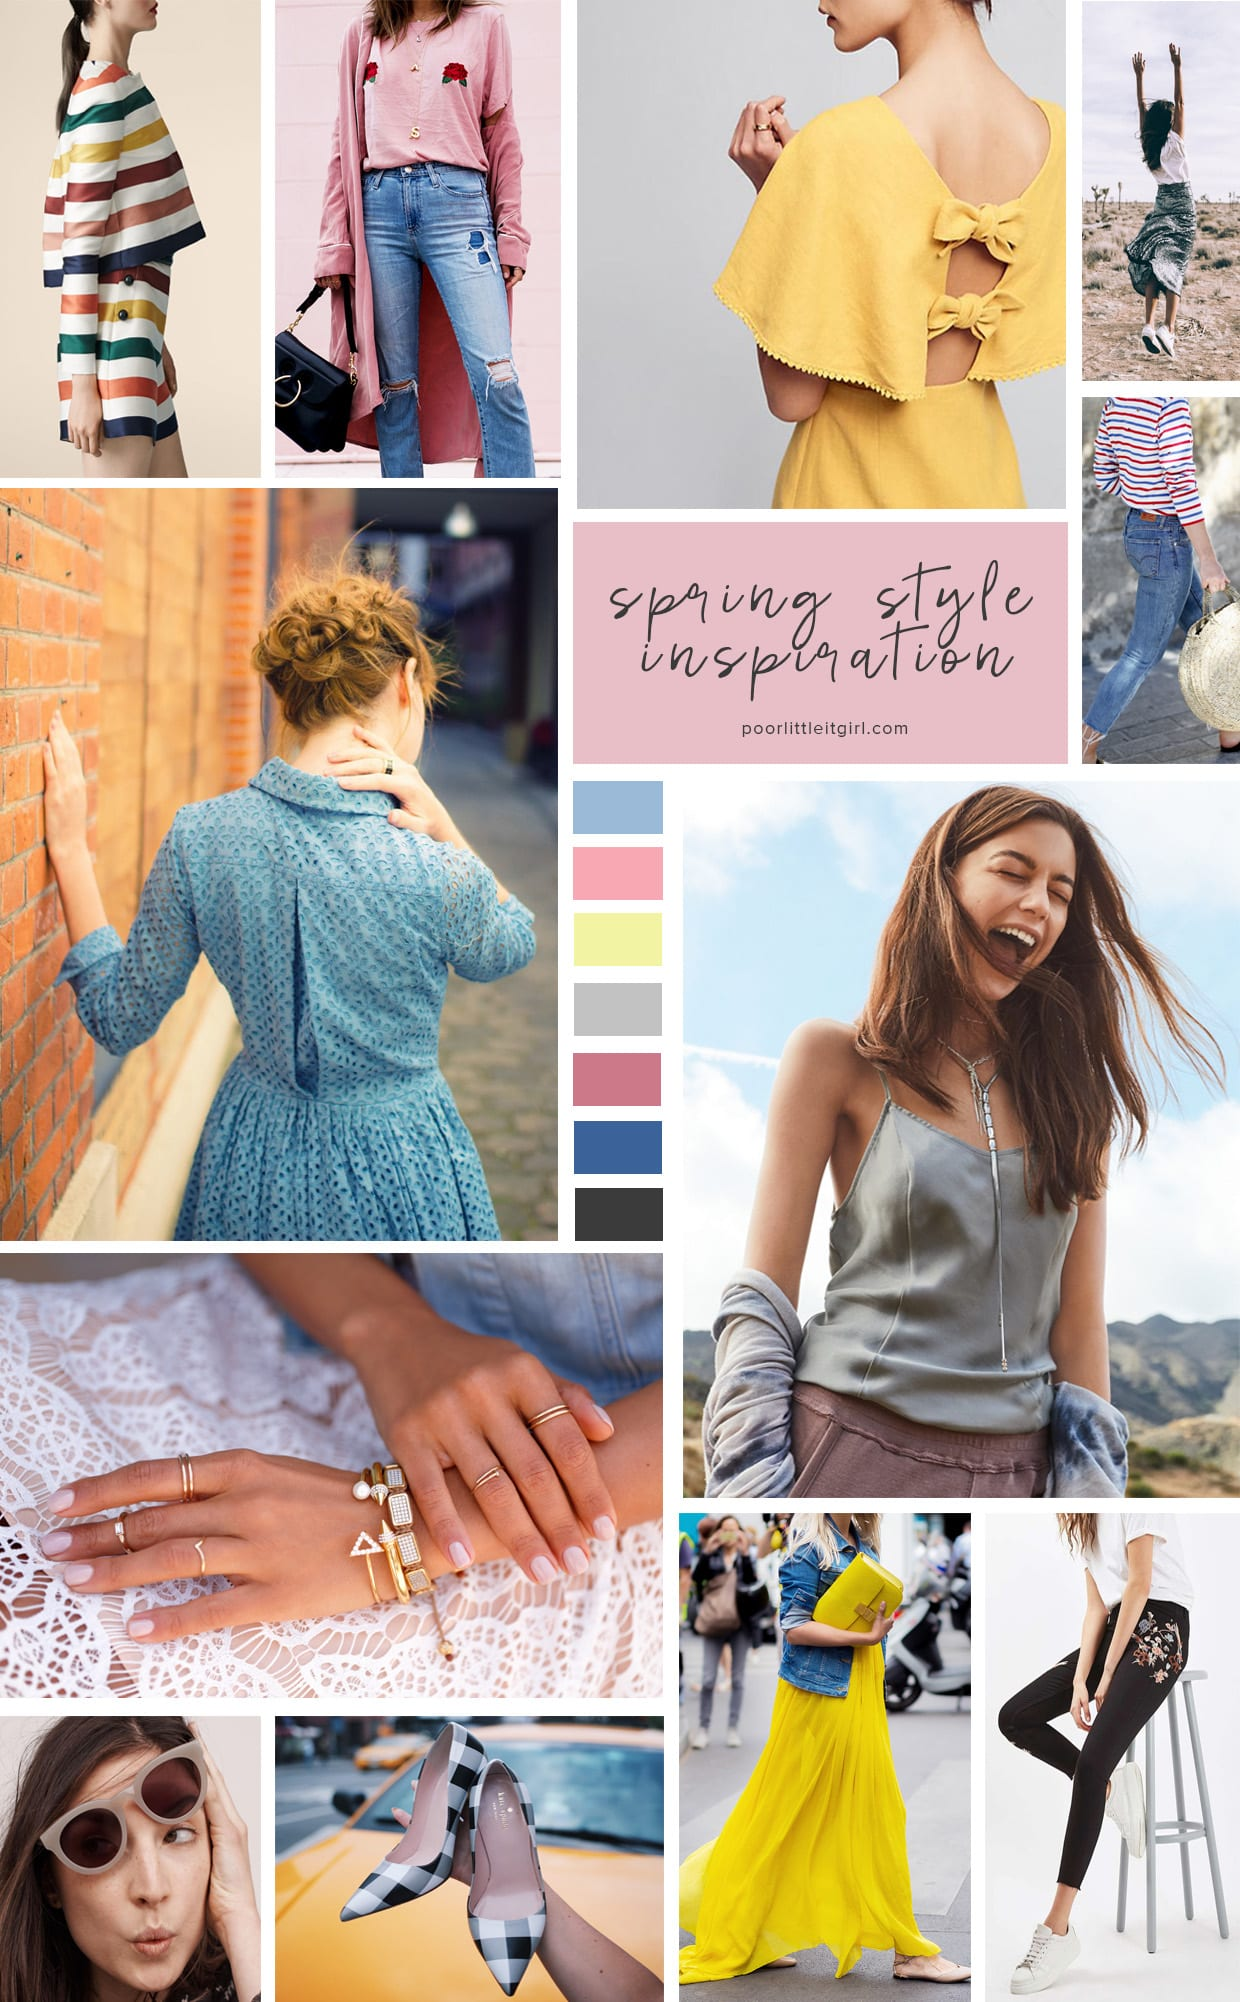 Spring Style Inspiration Mood Board - Poor Little It Girl